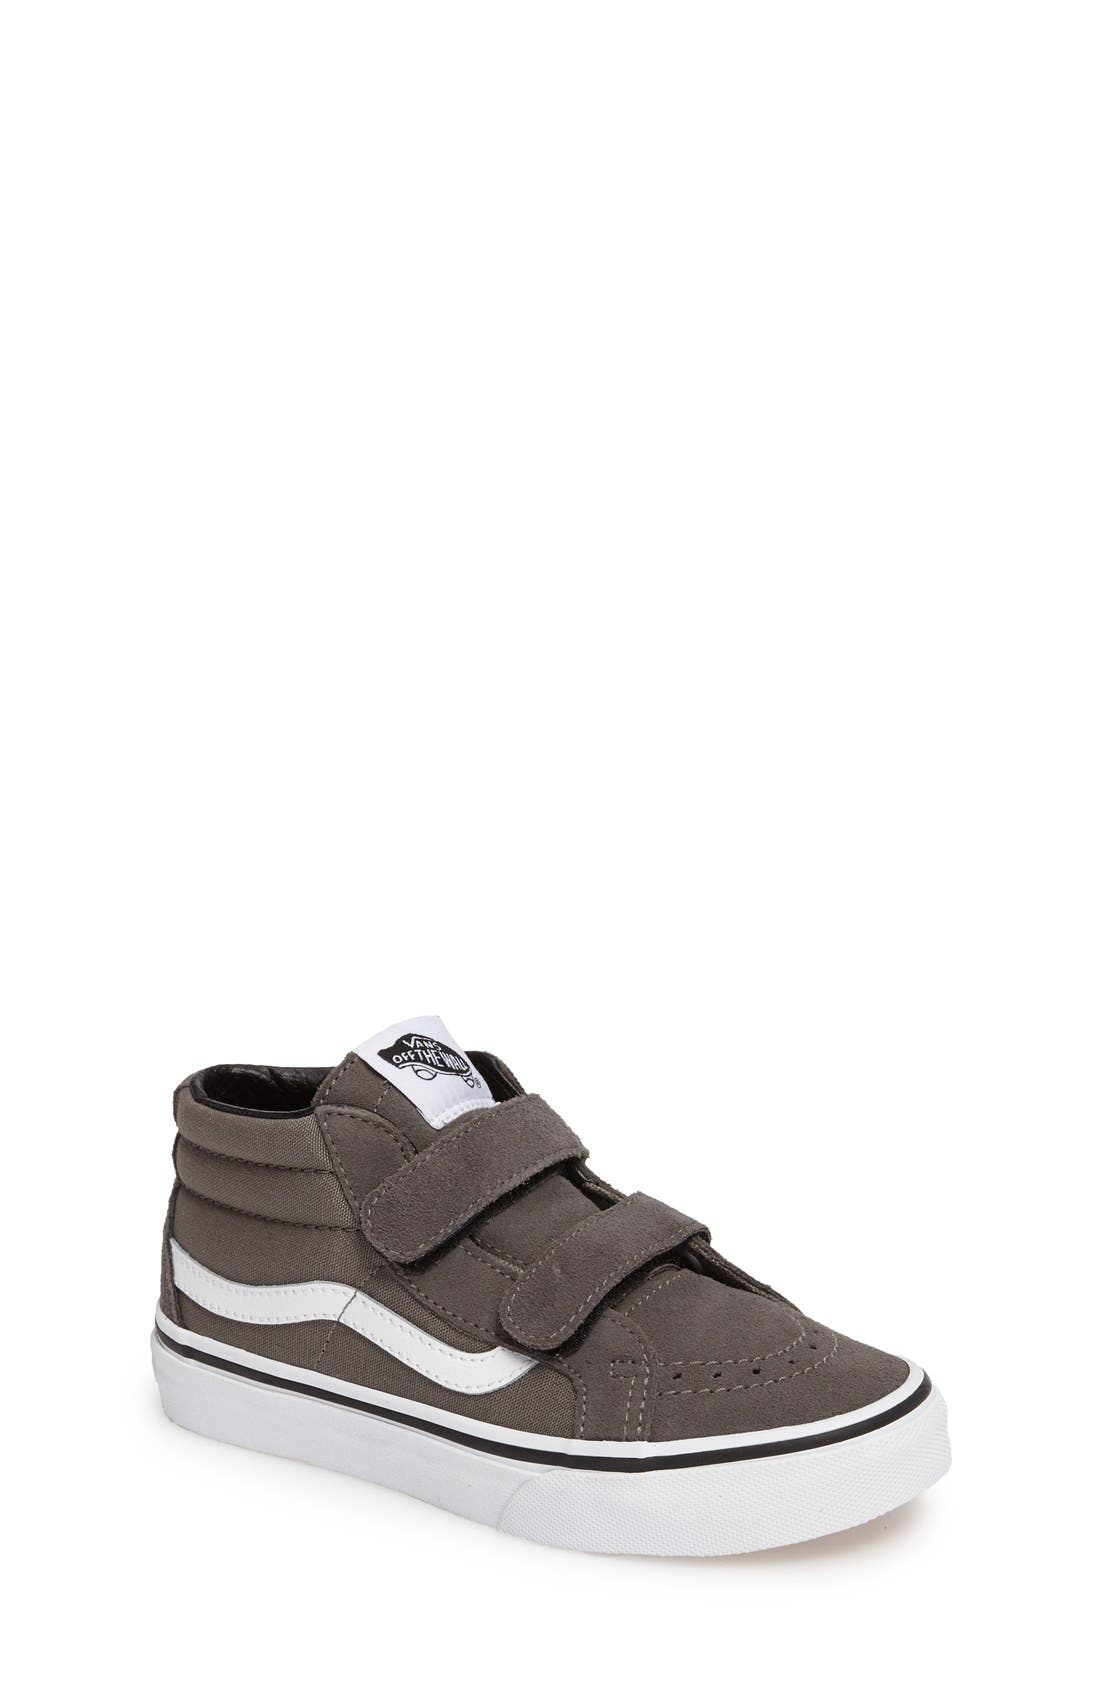 SK8 Mid-Top Reissue Sneaker,                         Main,                         color, GREY FABRIC